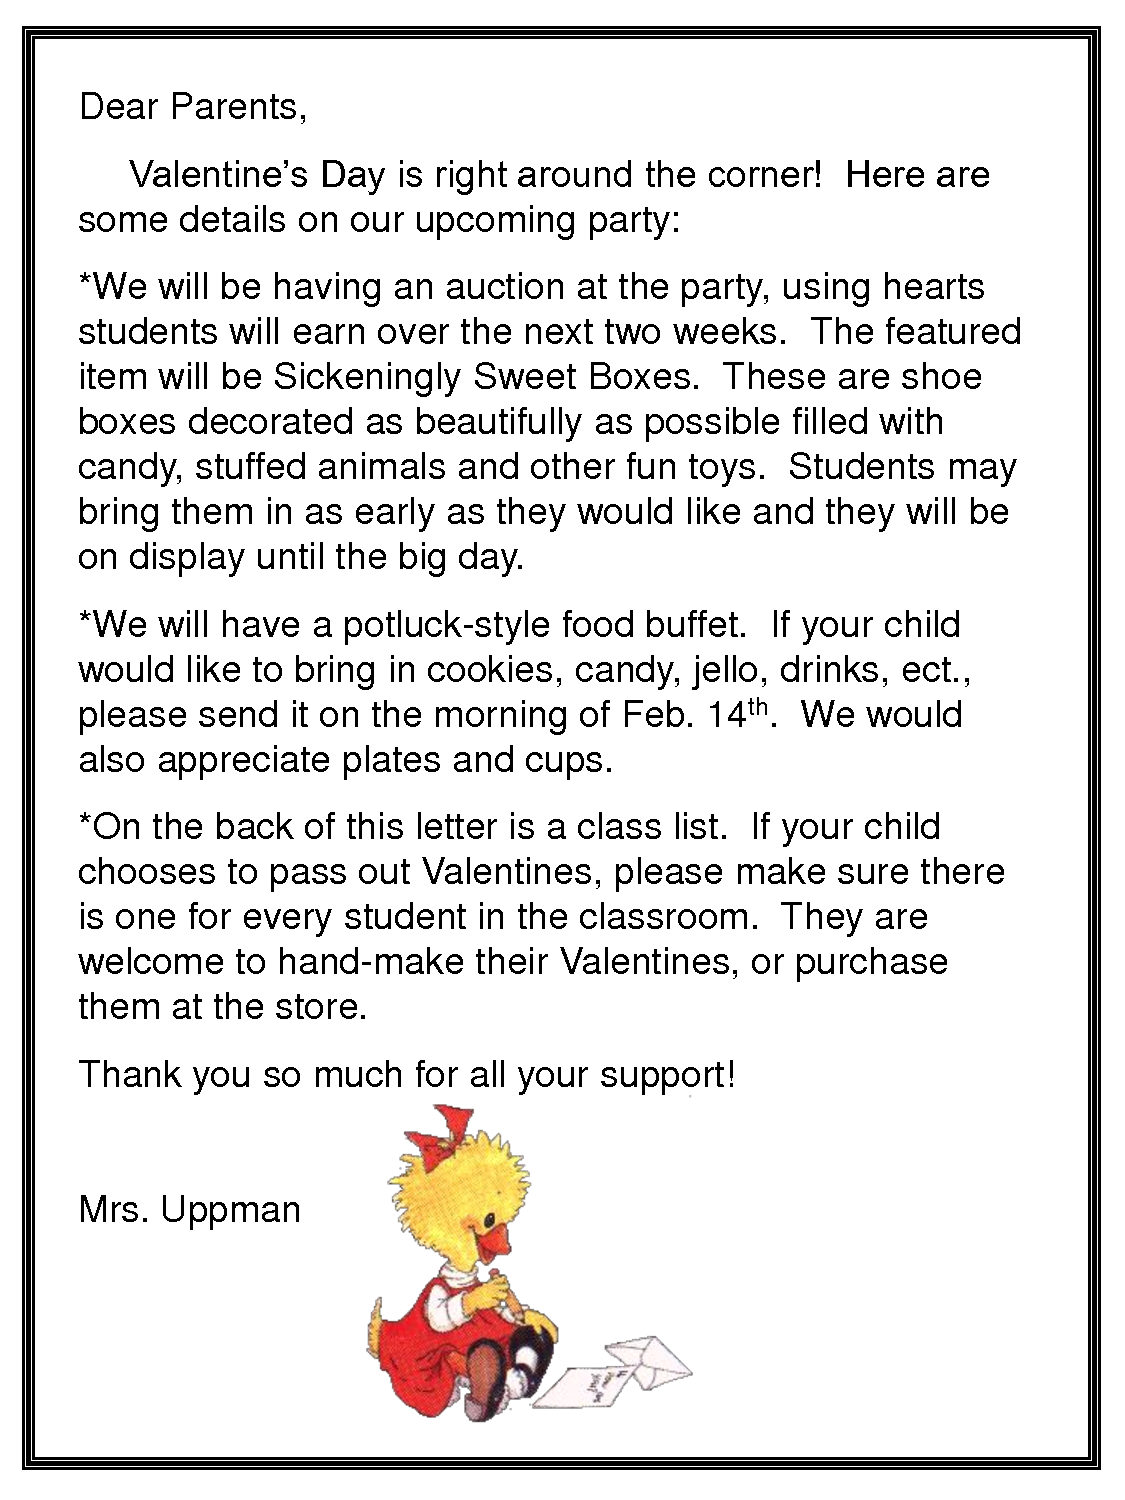 Holiday Party Letter to Parents | February Valentine 27s ...